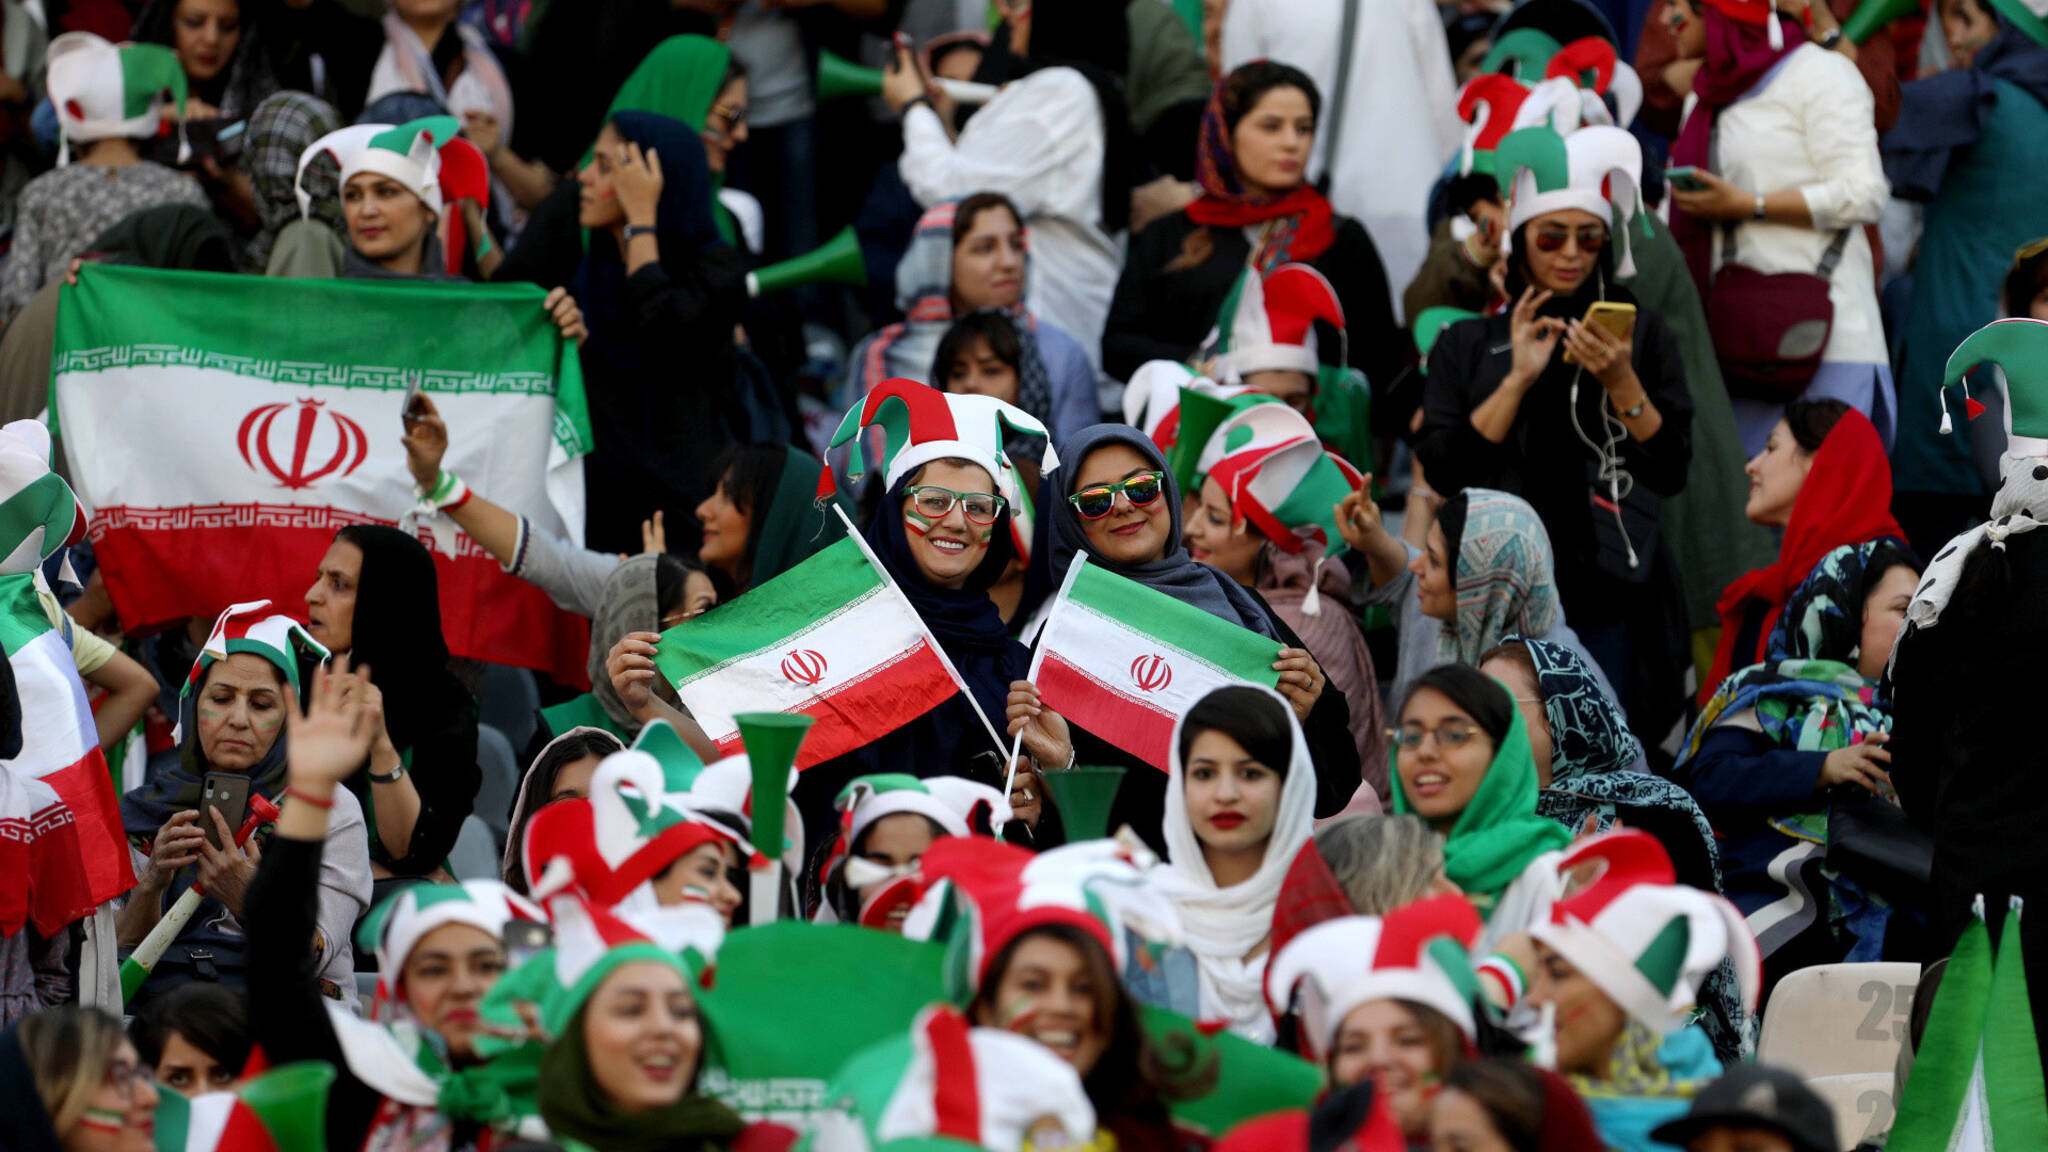 Iranian women supporters at Iran, Cambodia, photo by NOS / Marcel van der Steen